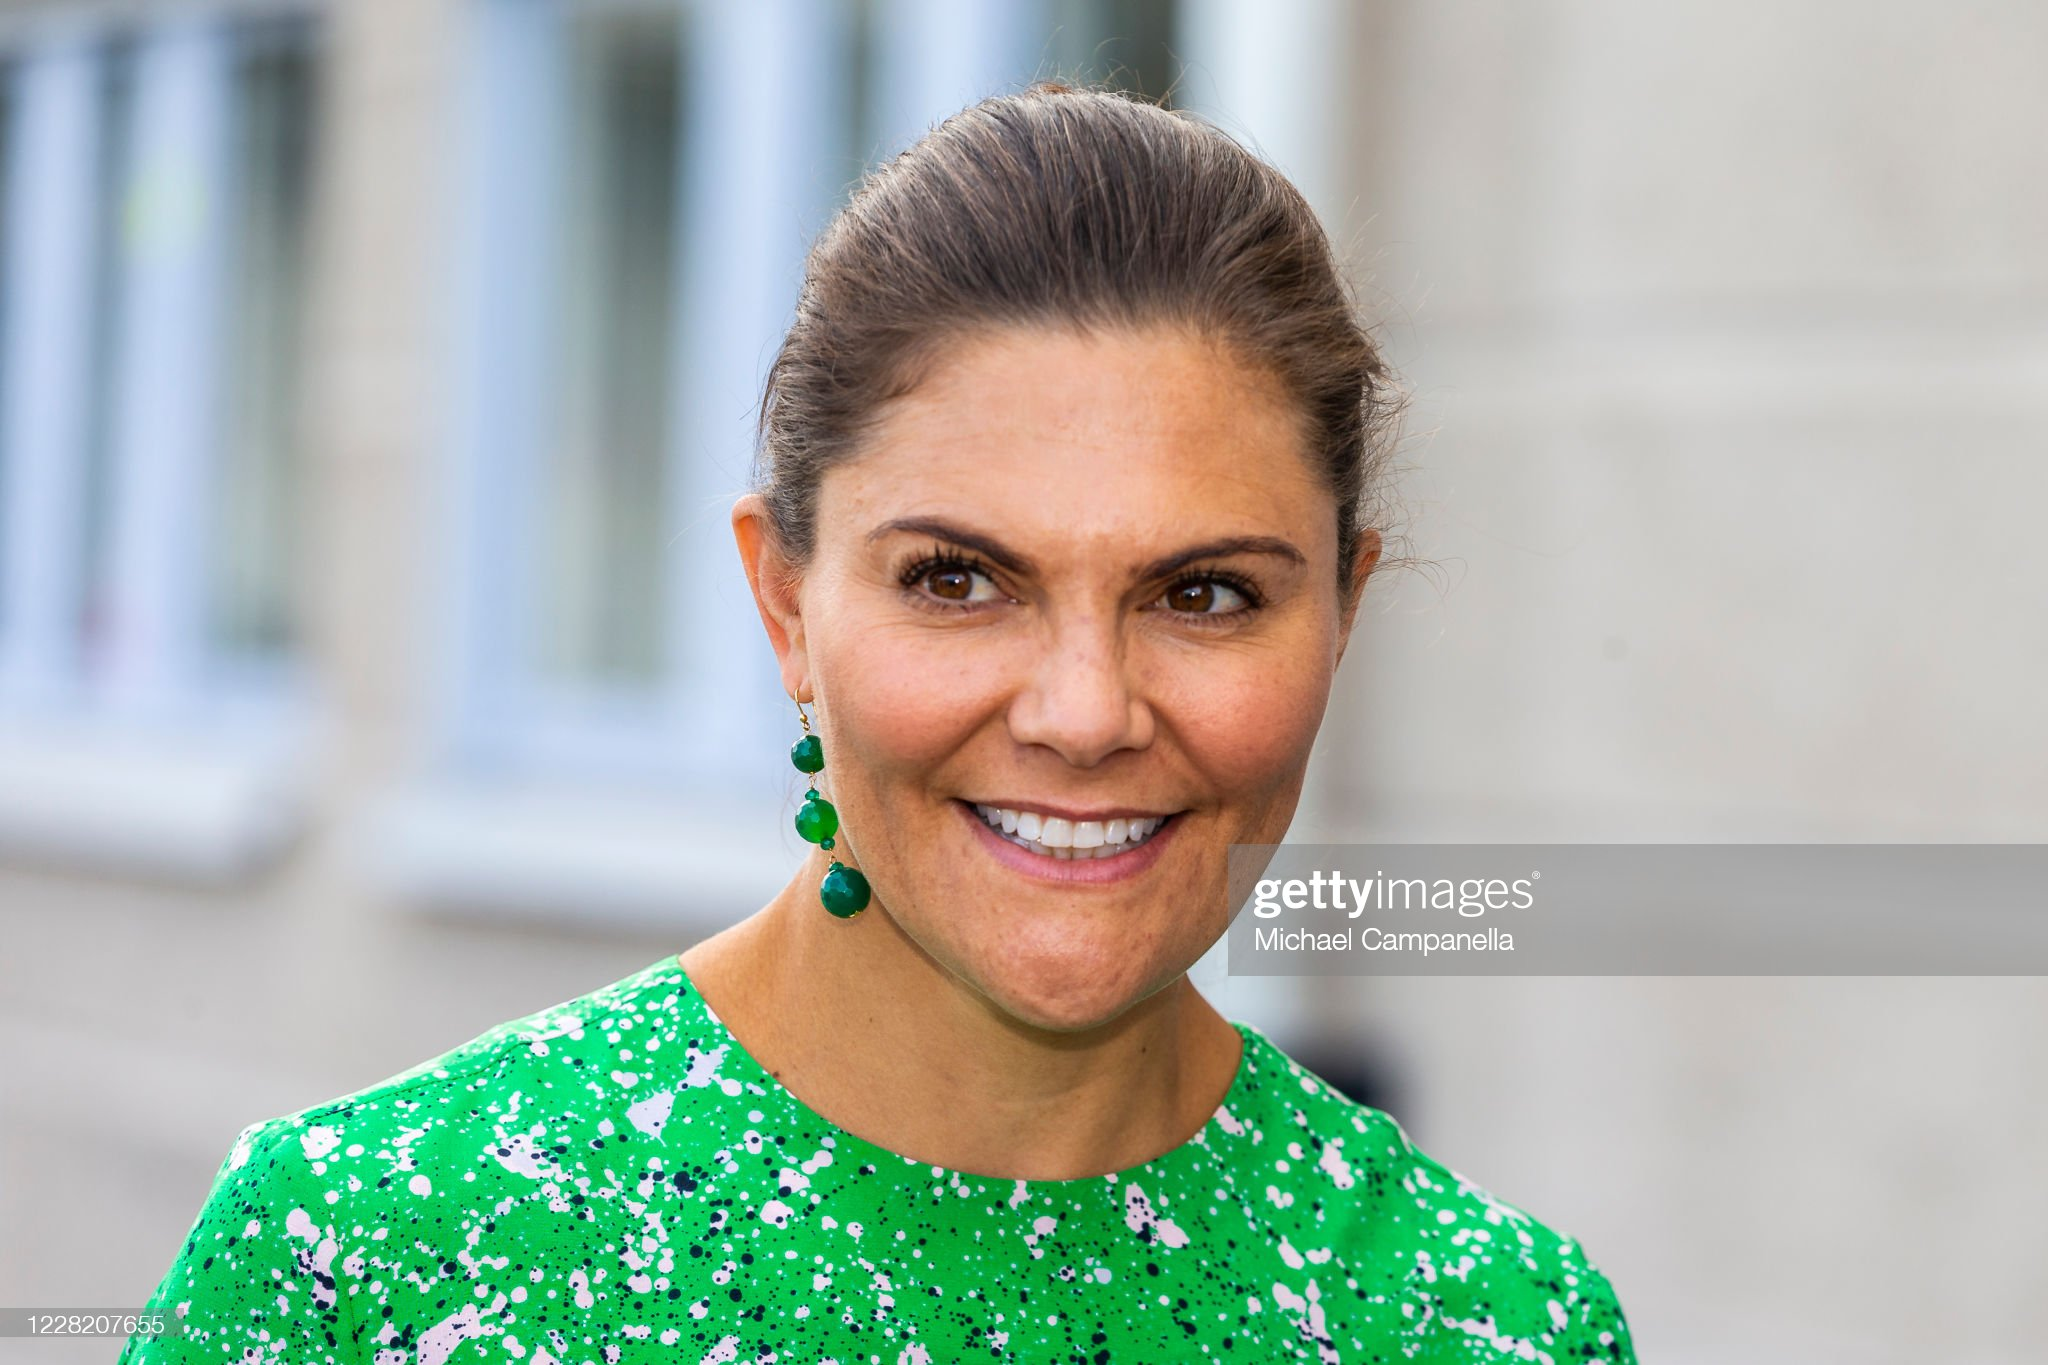 crown-princess-victoria-of-sweden-visits-the-artist-organization-on-picture-id1228207655